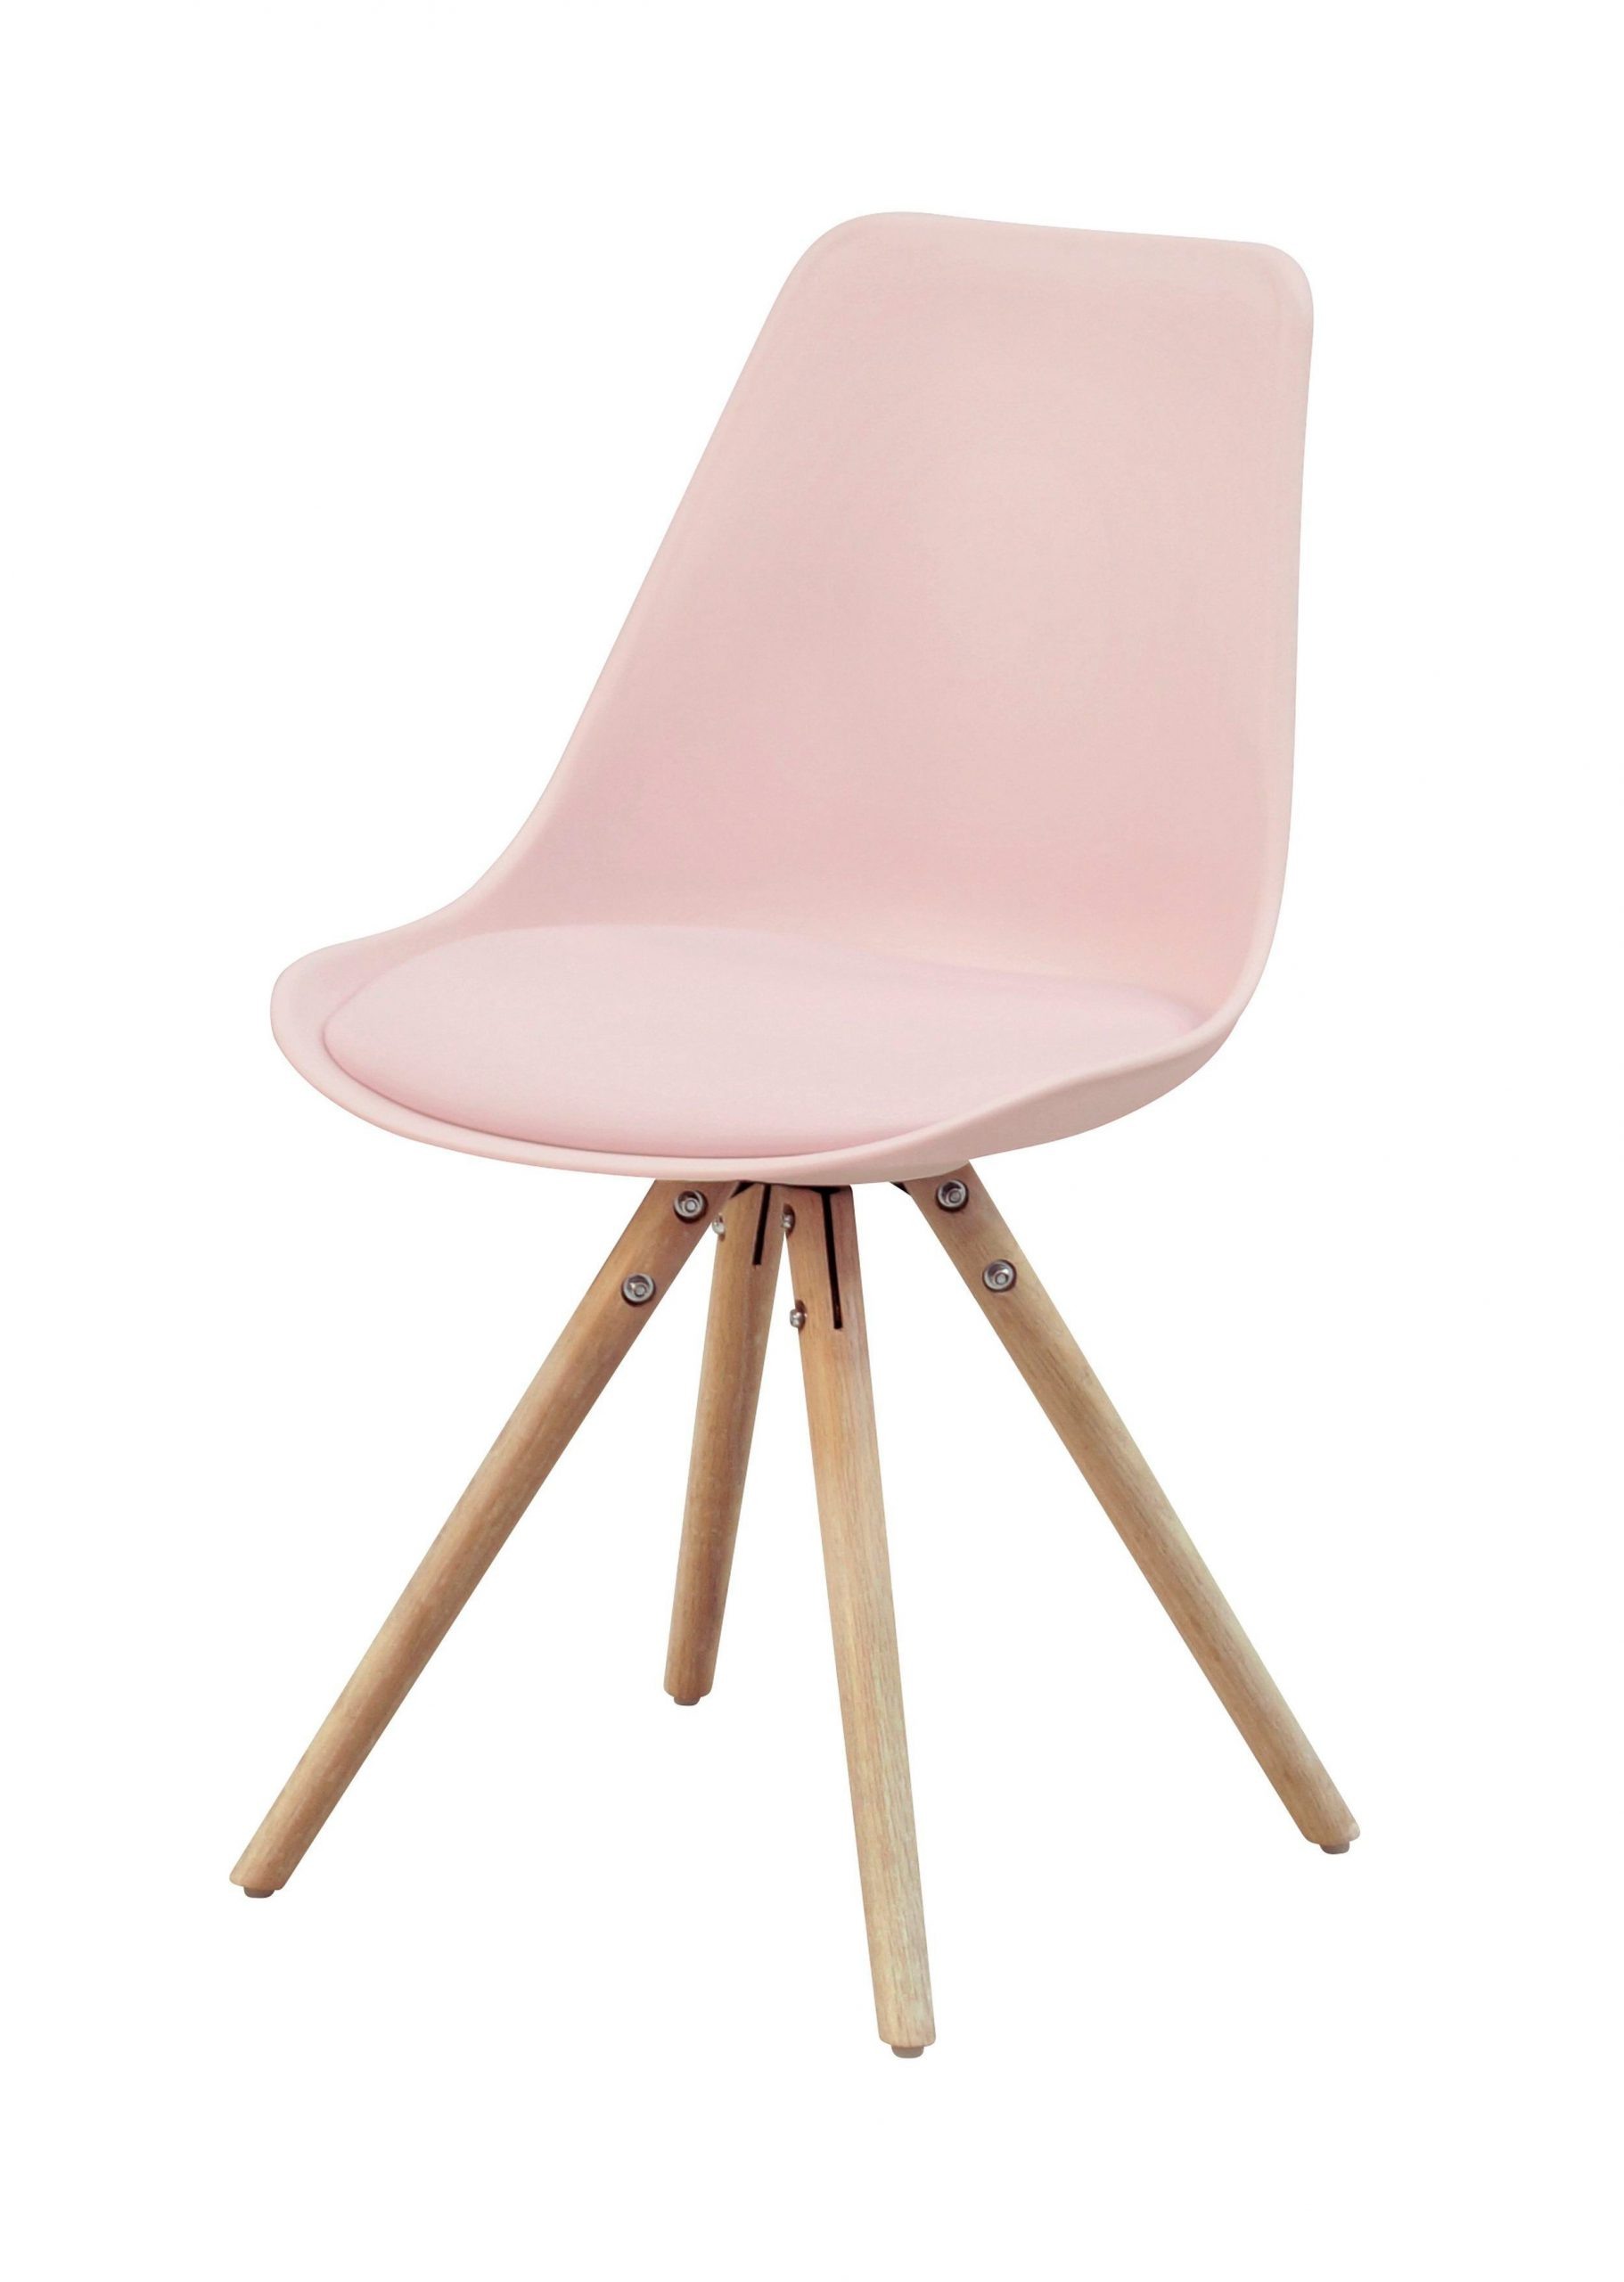 Stuhl Woody Rosa Chaise Oslo Rose Design Scandinave But ... intérieur Chaise But